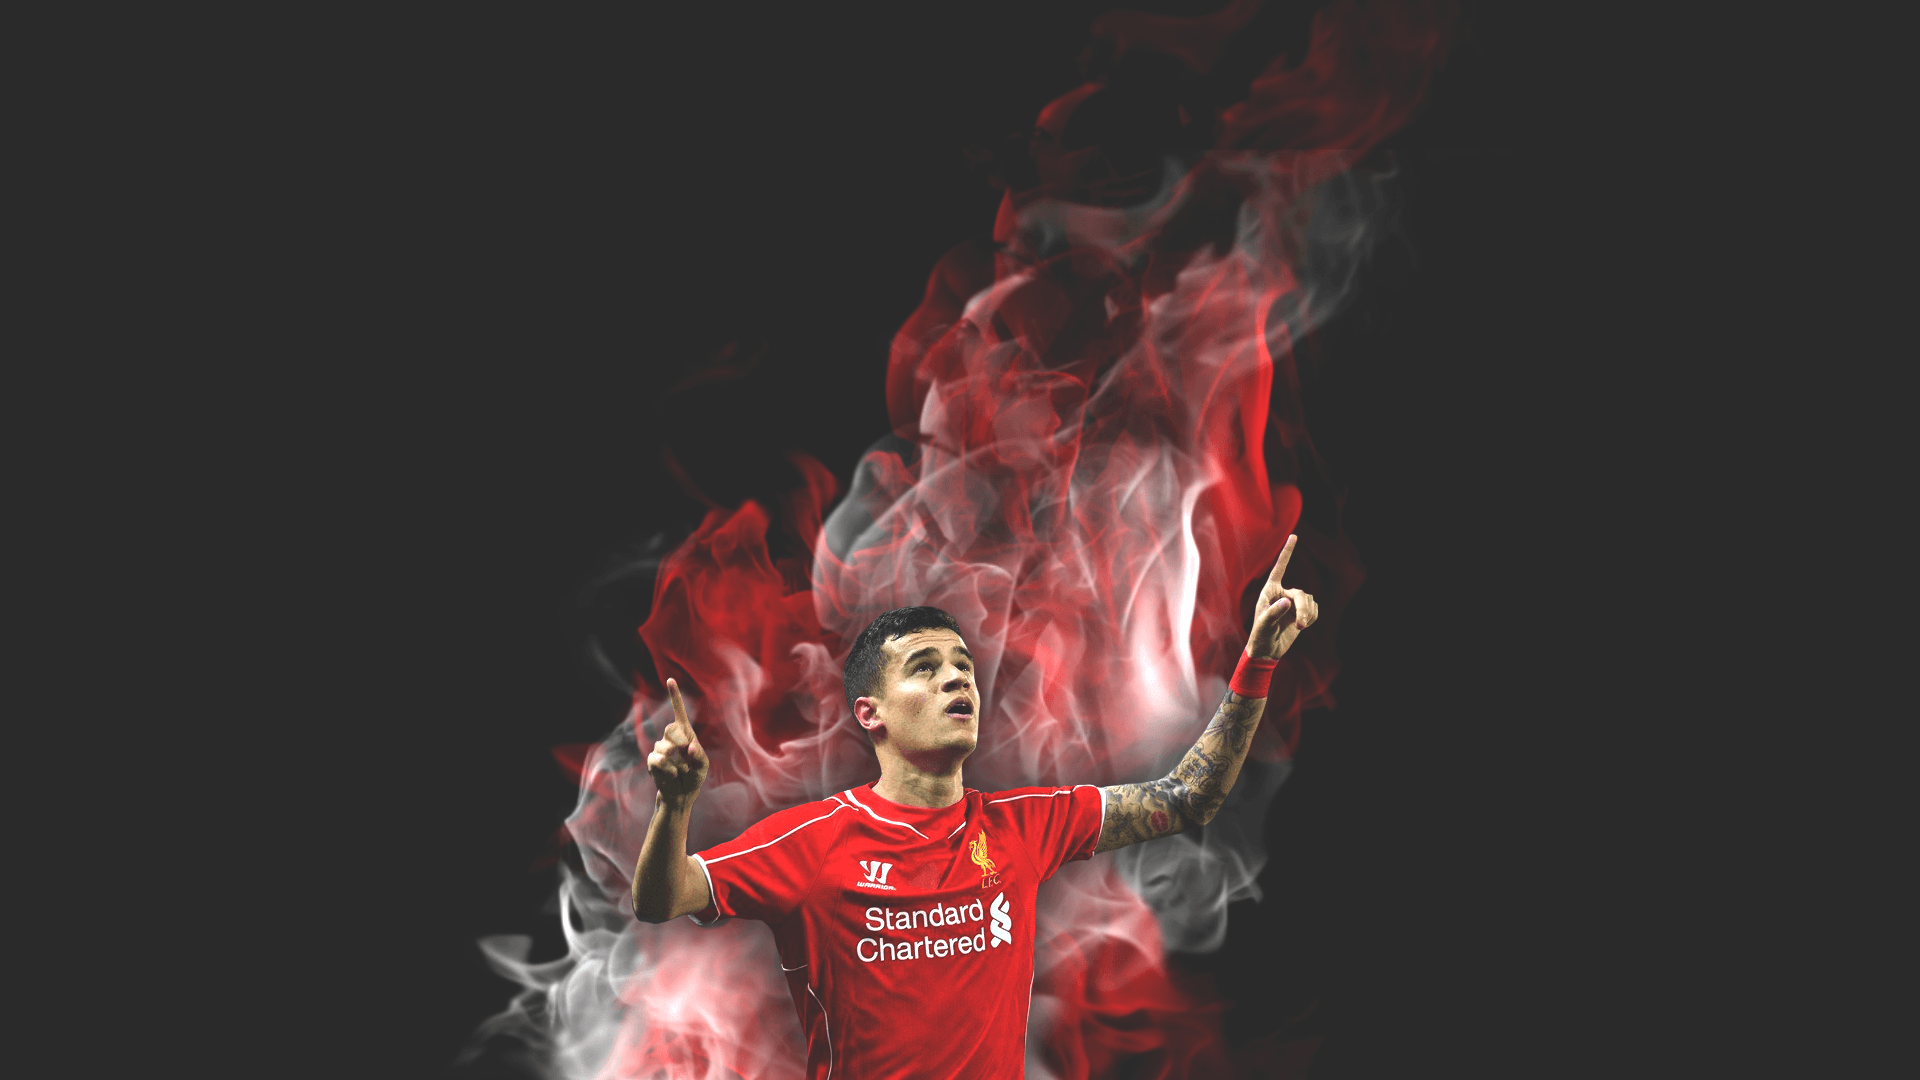 liverpool wallpapers for pc - photo #34